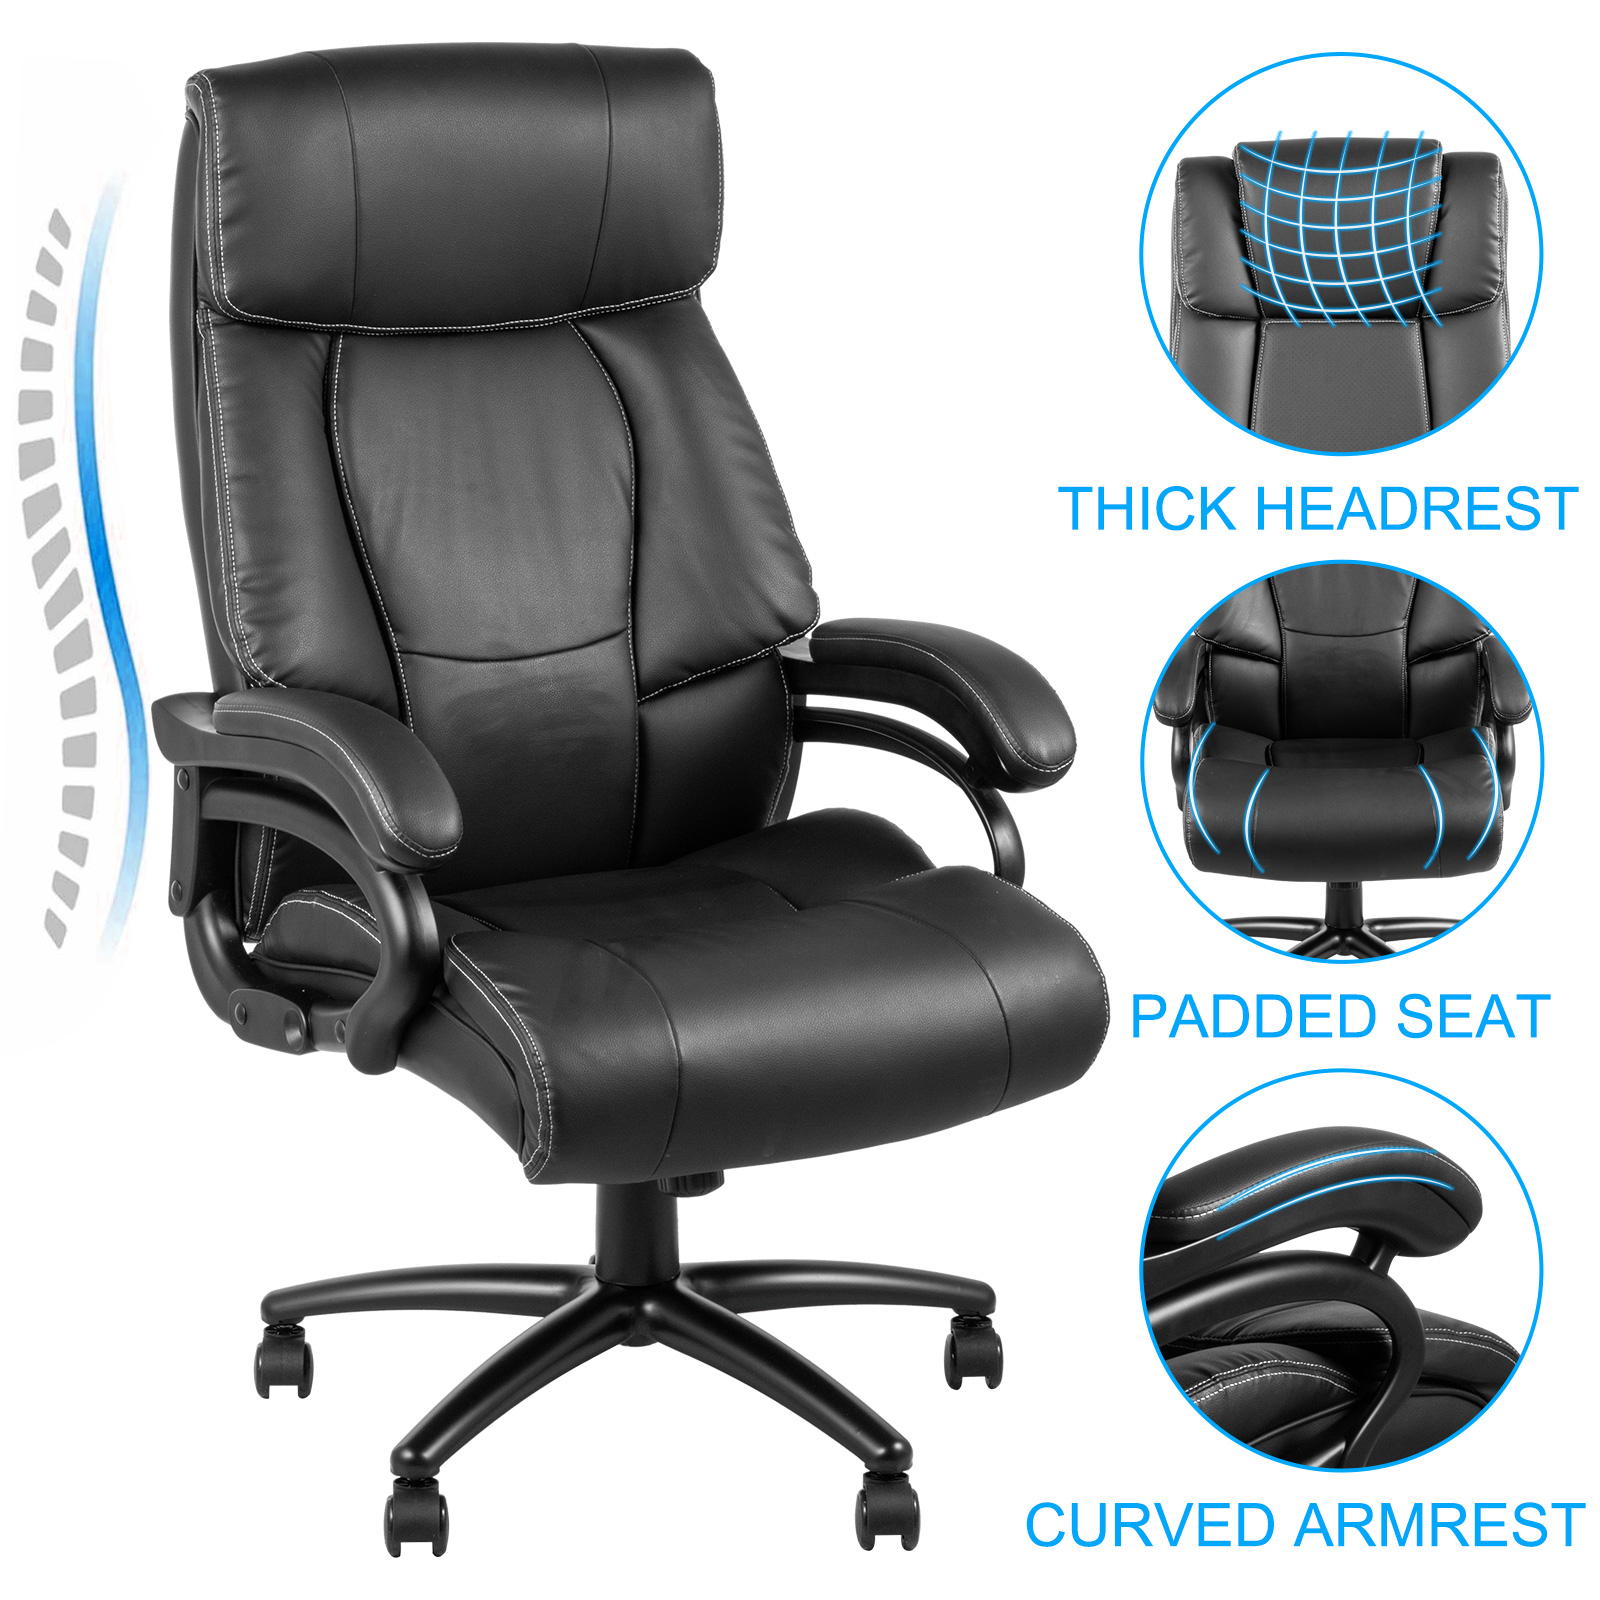 executive chair m103 2 - VEVOR Executive Chair High Back Office Chair Adjustable Swivel Executive Office Chair with Headrest Reclining Computer Chair